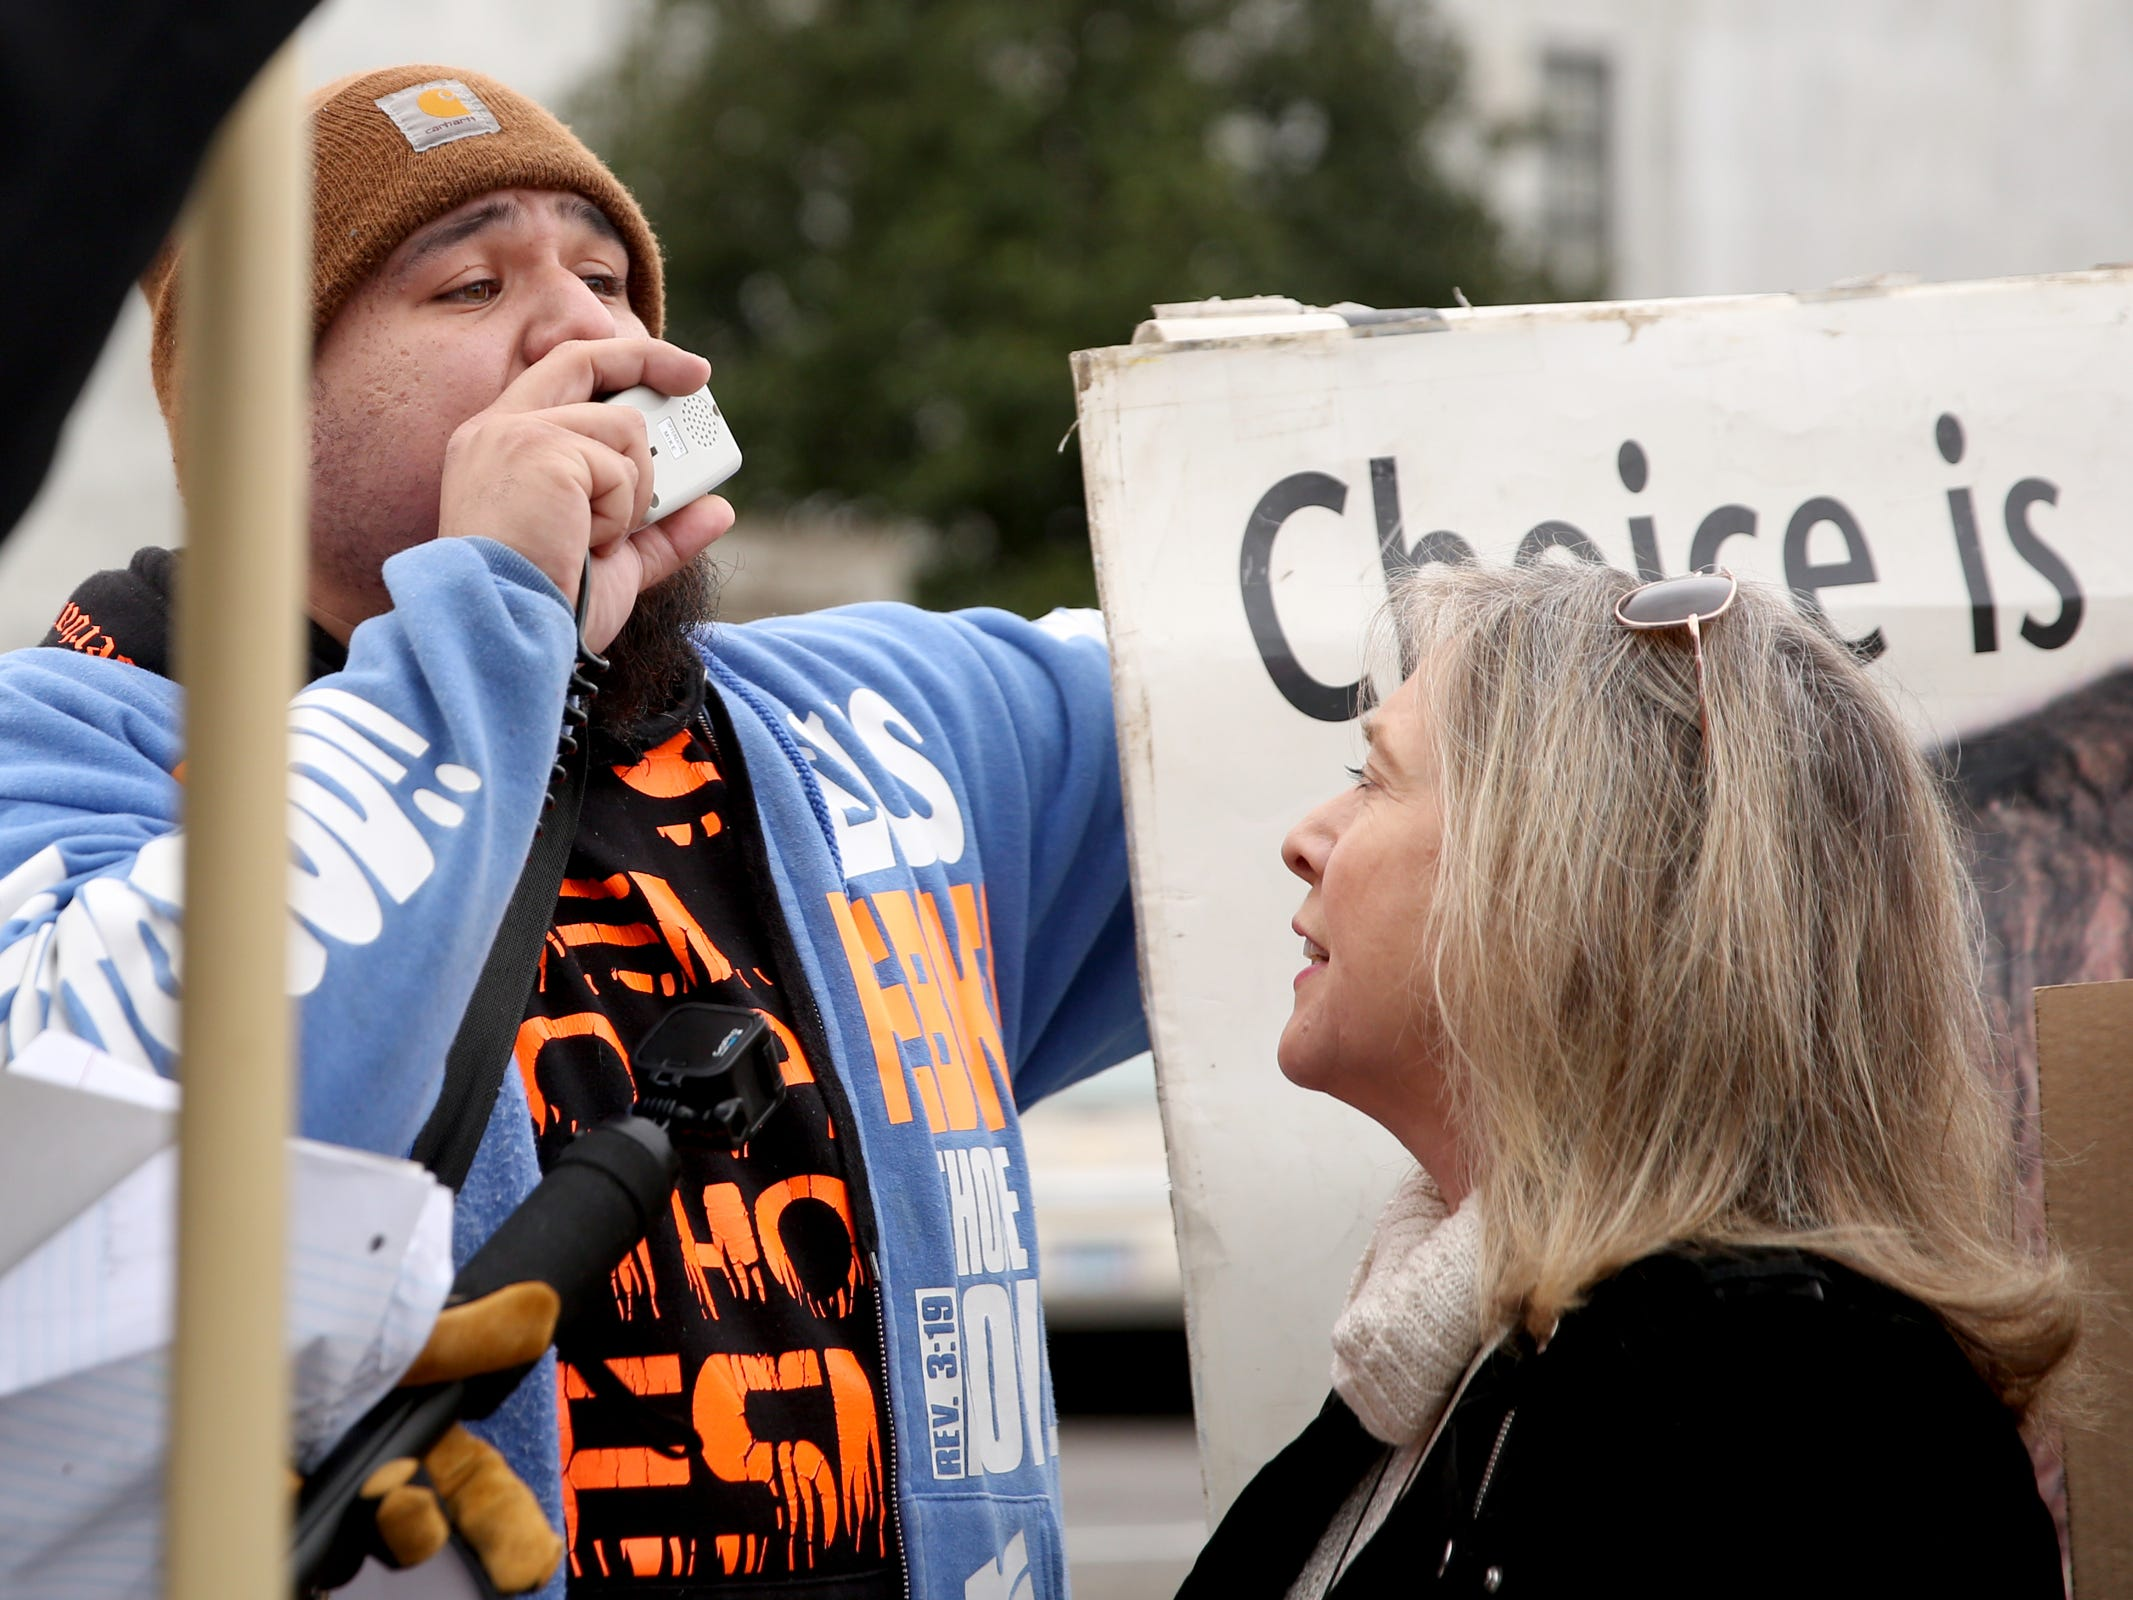 A counter-protester who gave the name St. Templar uses a megaphone to try and drown out speakers, including Warren Binford, at the Women's March Salem outside the Oregon State Capitol on Saturday, Jan. 19, 2019.